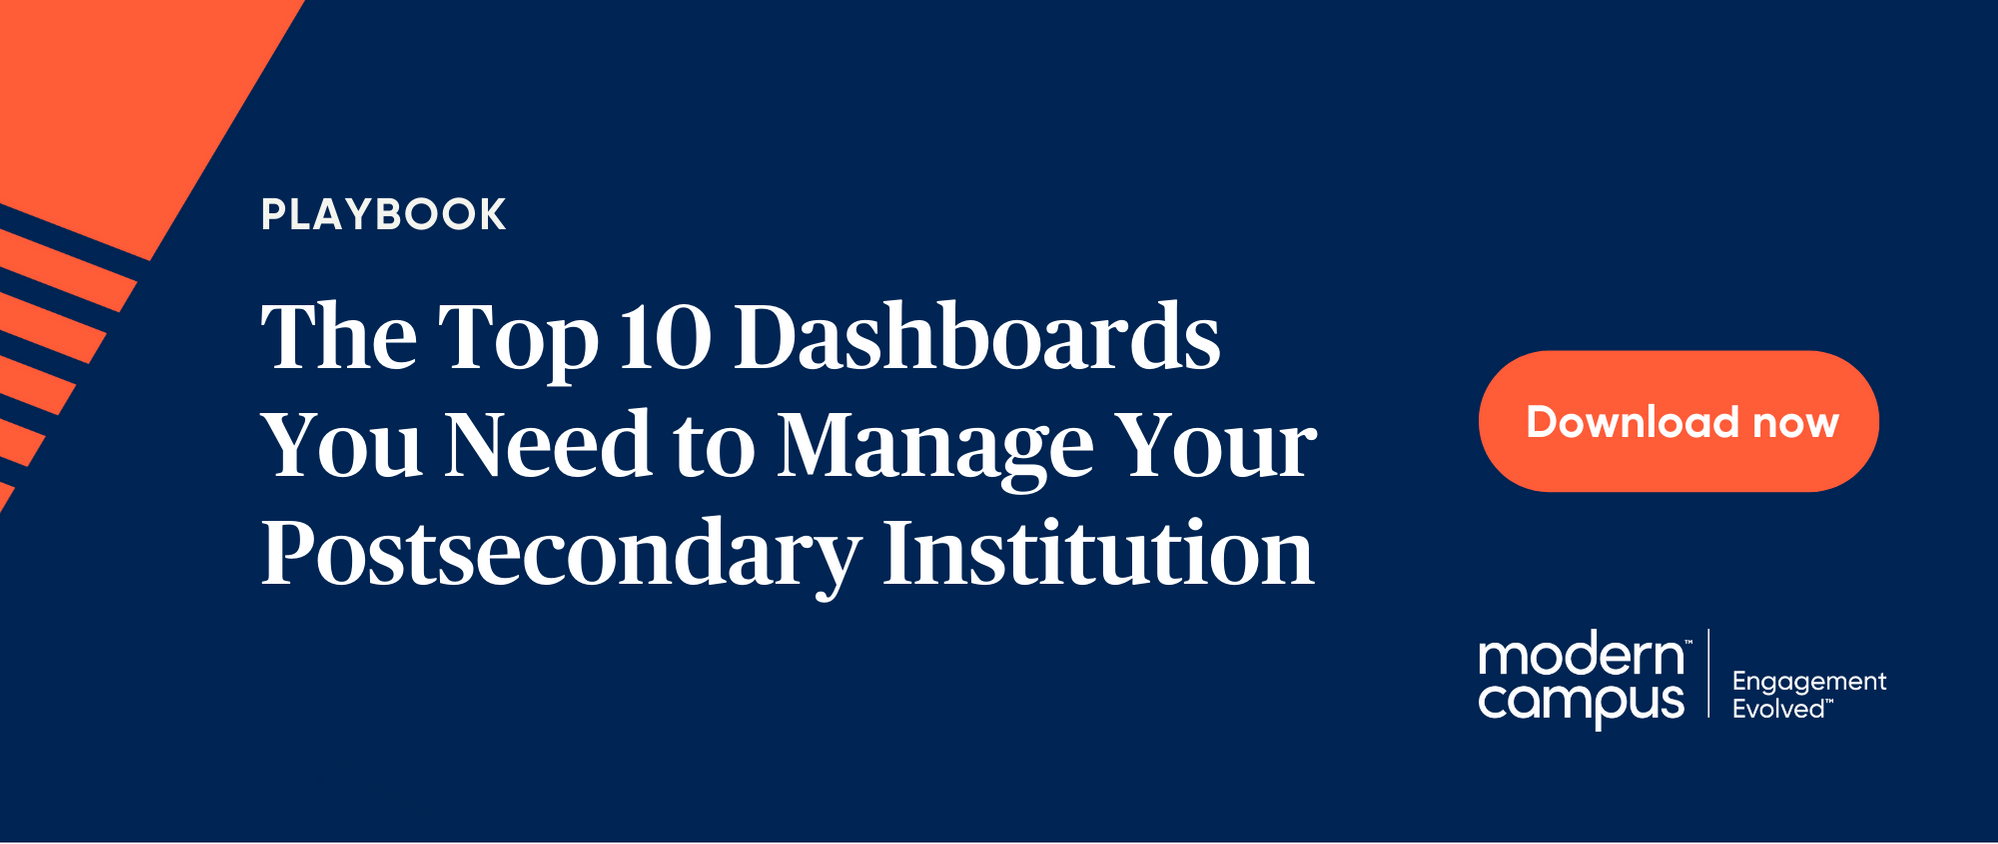 Top 10 Dashboards